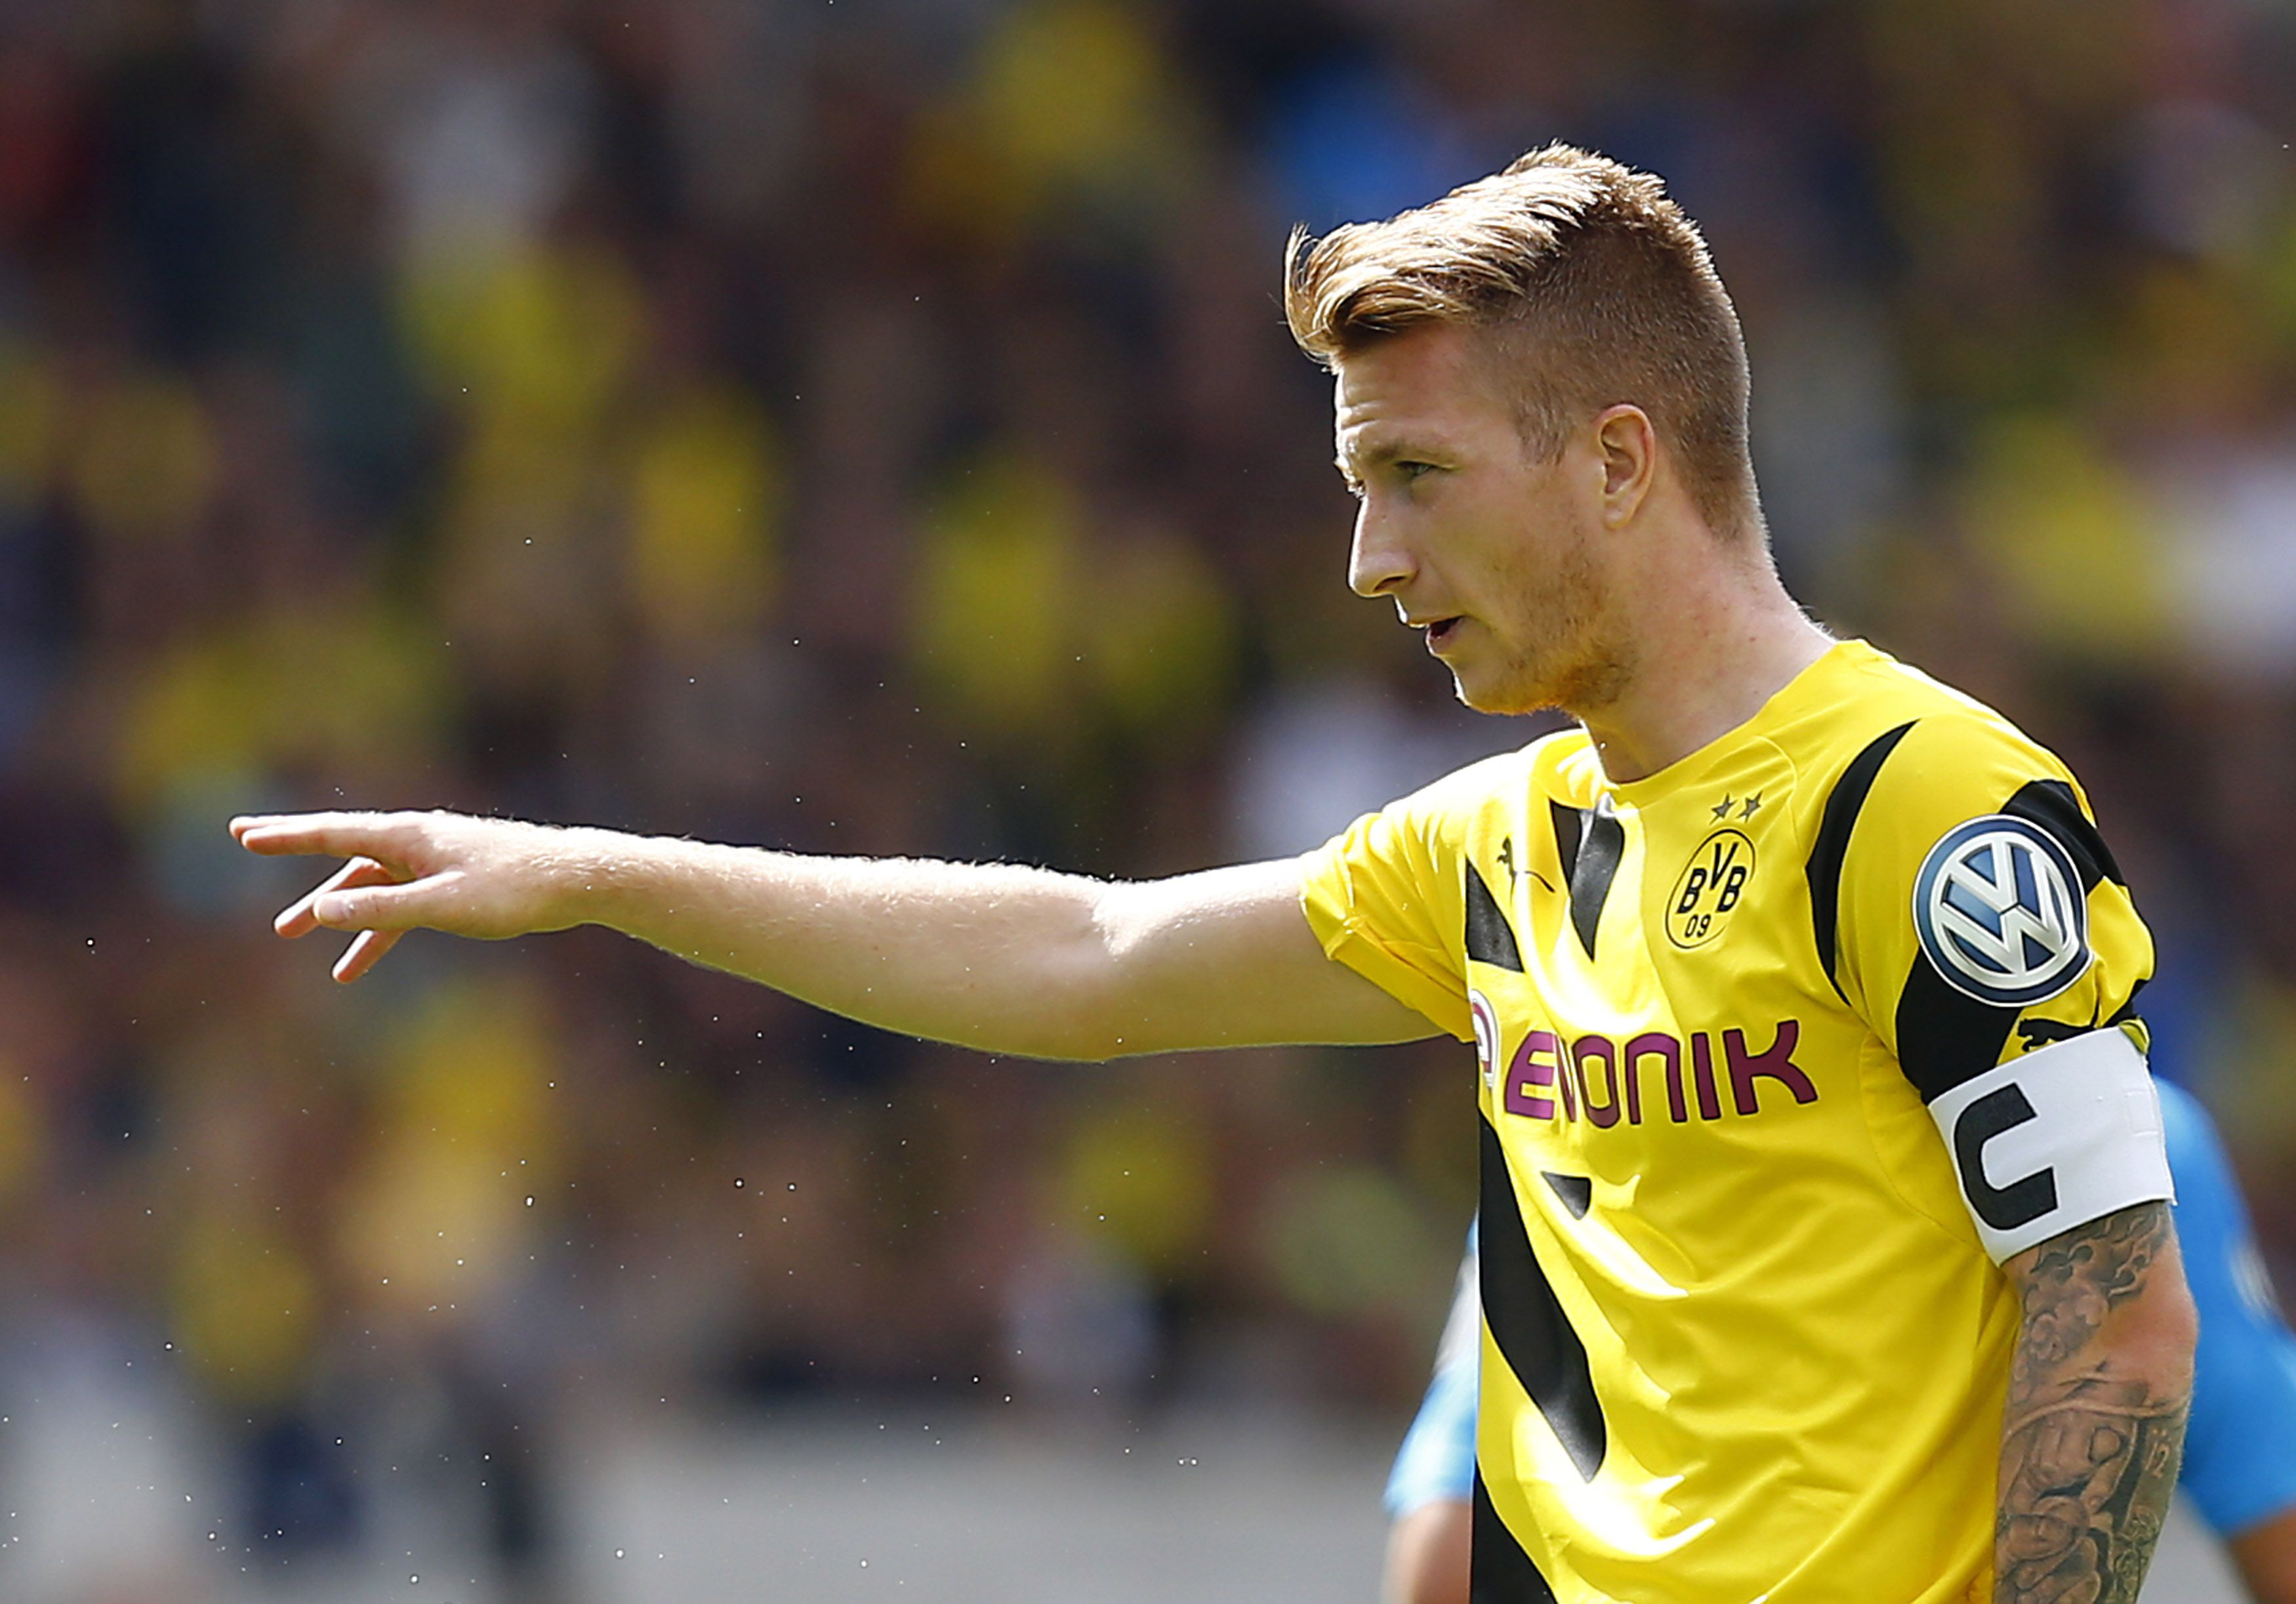 marco reus images hd : find best latest marco reus images hd for